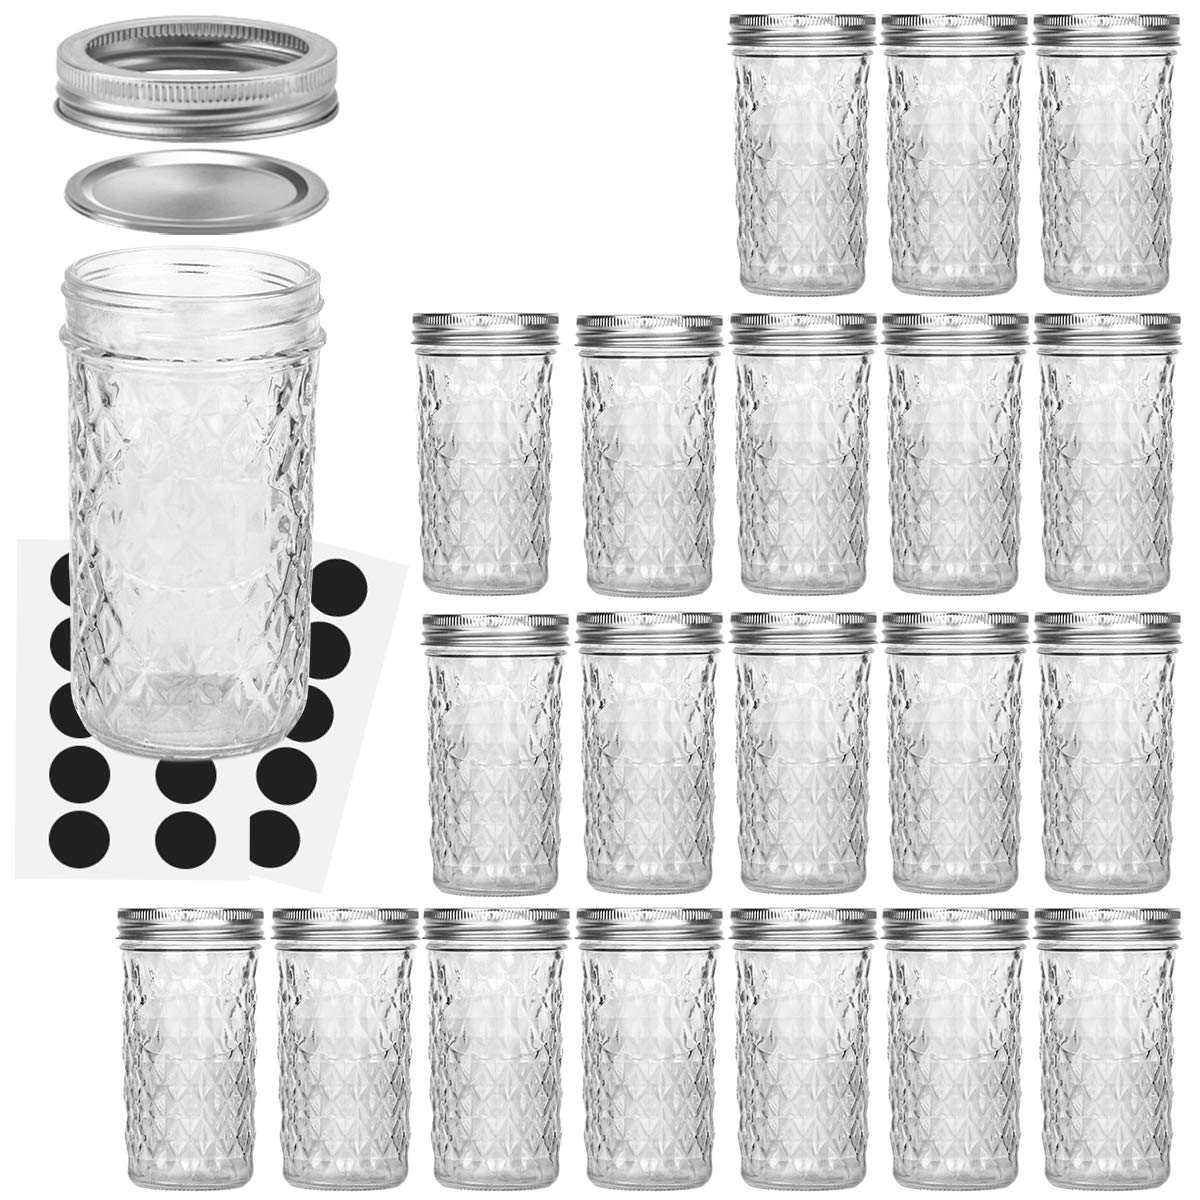 Mason Jars 12 OZ, VERONES Canning Jars Jelly Jars With Regular Lids, Ideal for Jam, Honey, Wedding Favors, Shower Favors, Baby Foods, 20 PACK